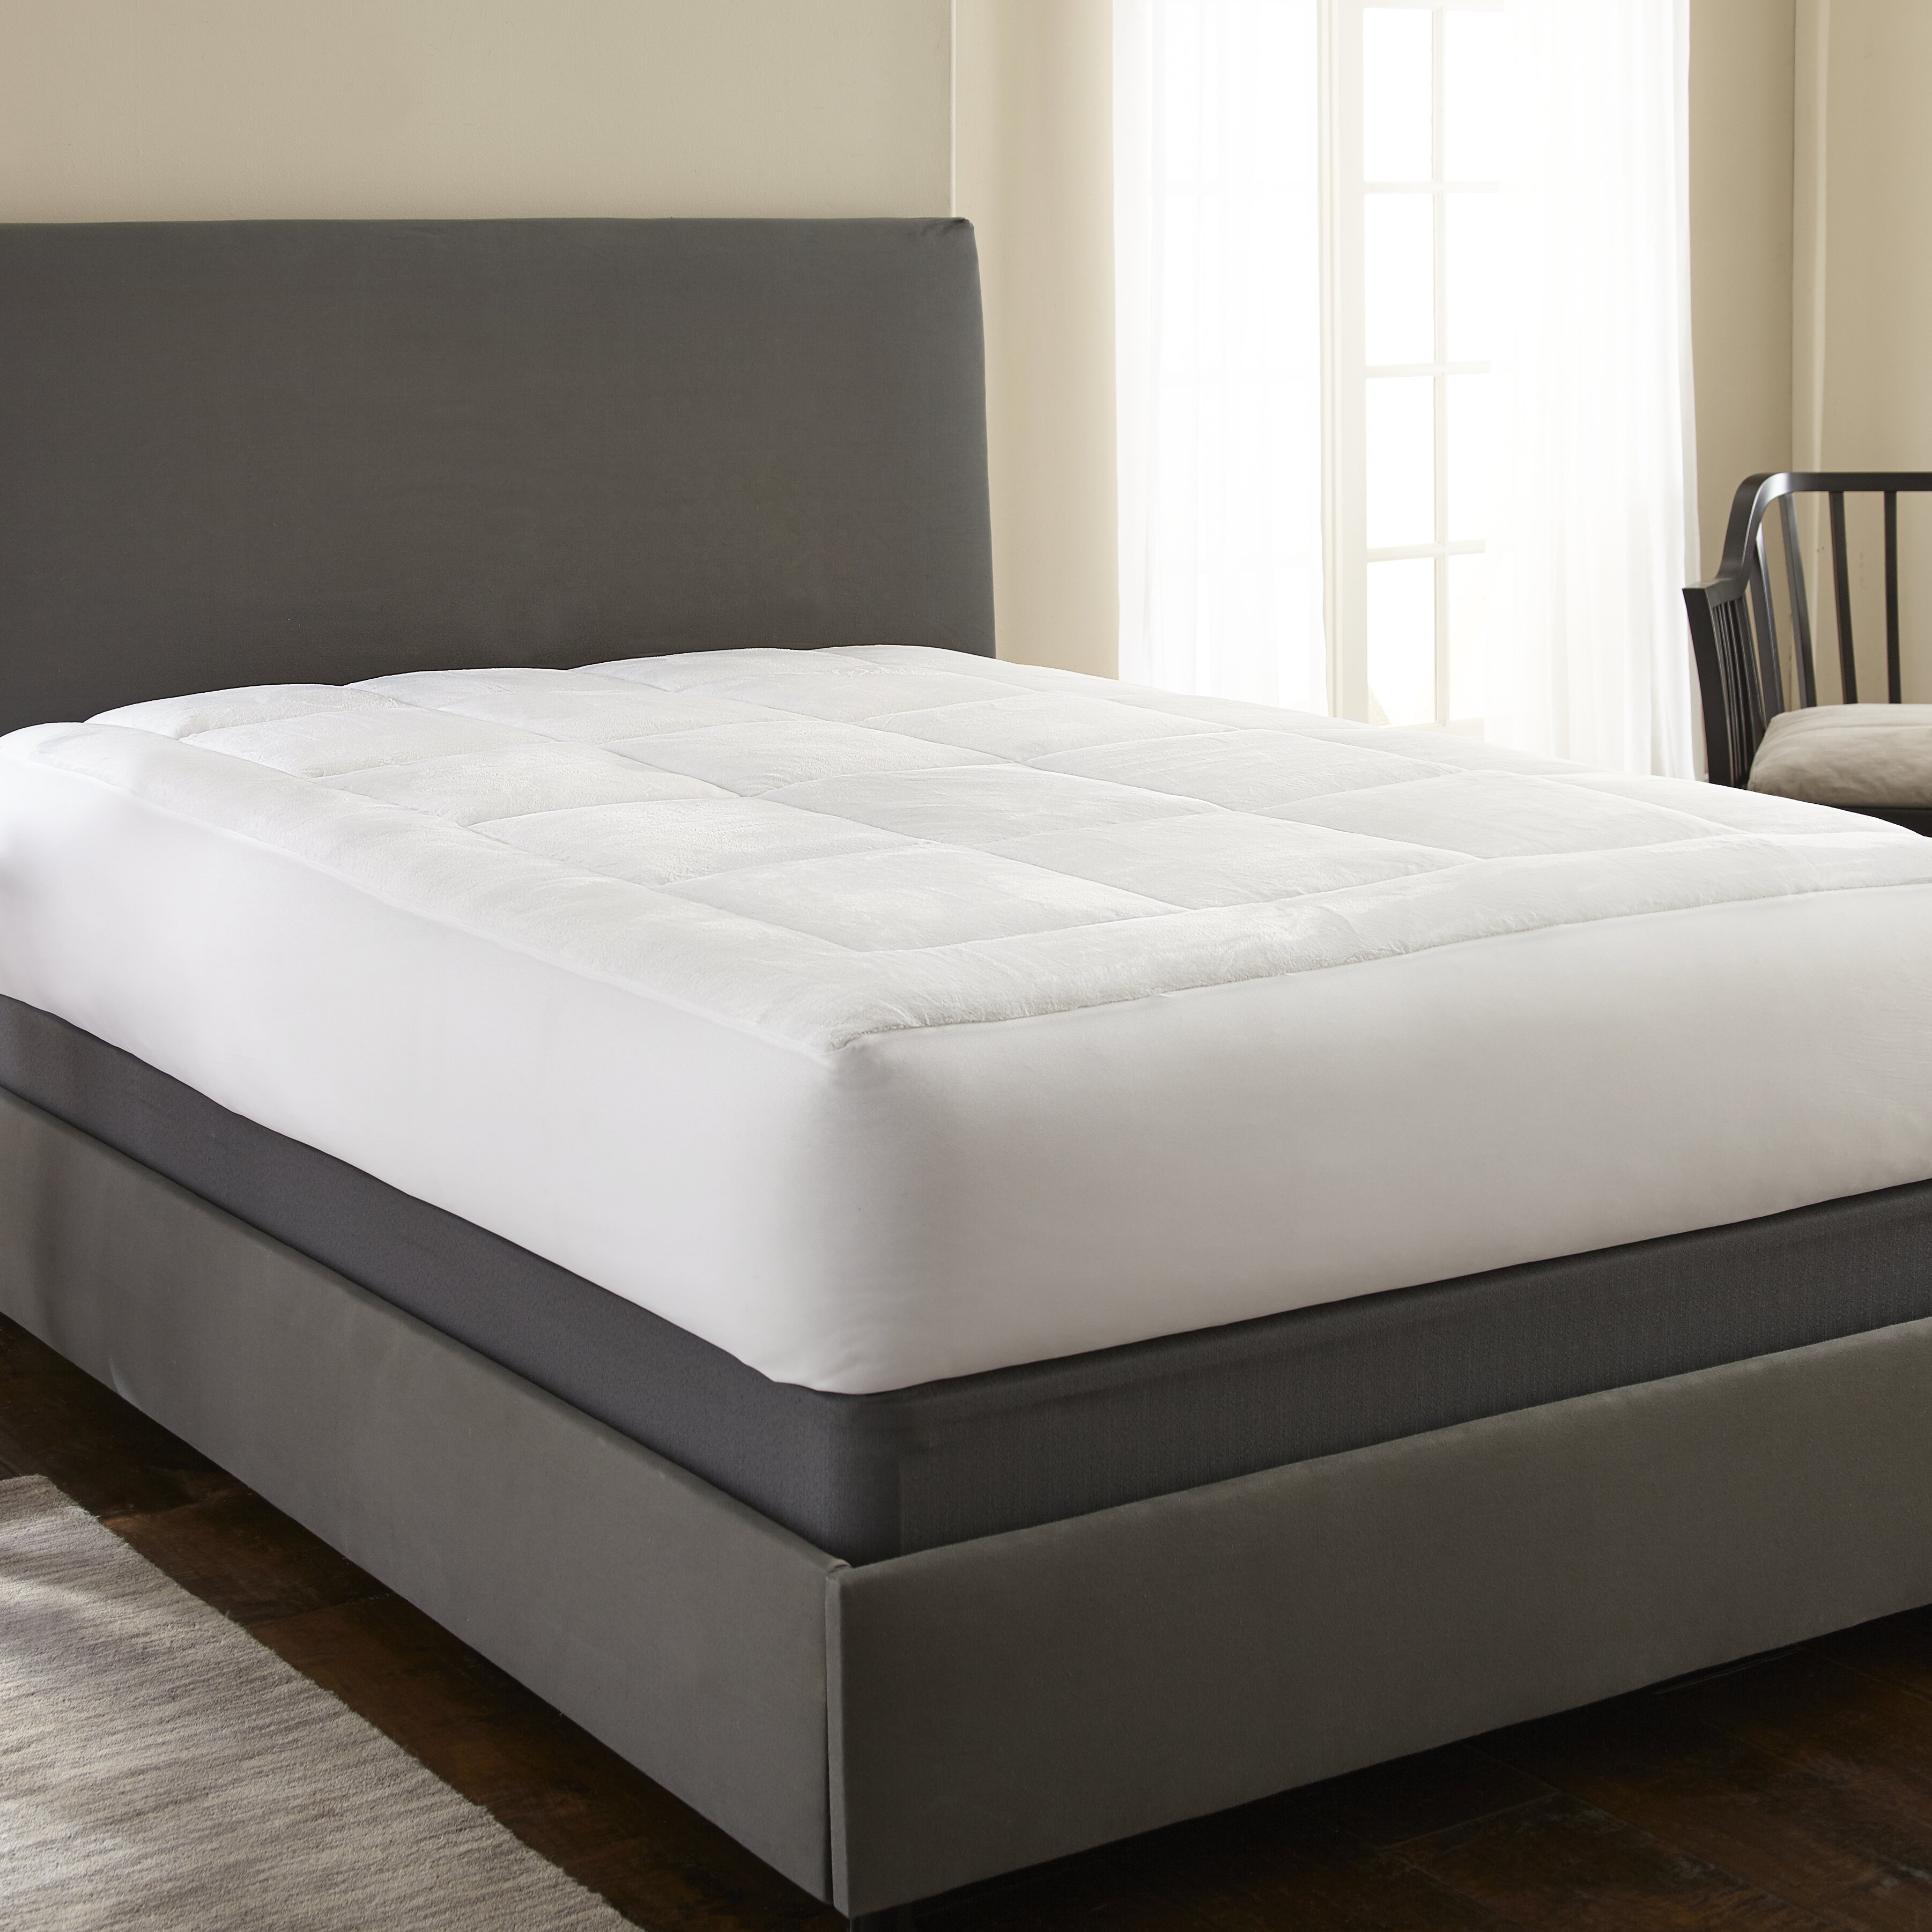 IEnjoy Home Simply Soft™ Pillow Top Luxury Mattress Pad